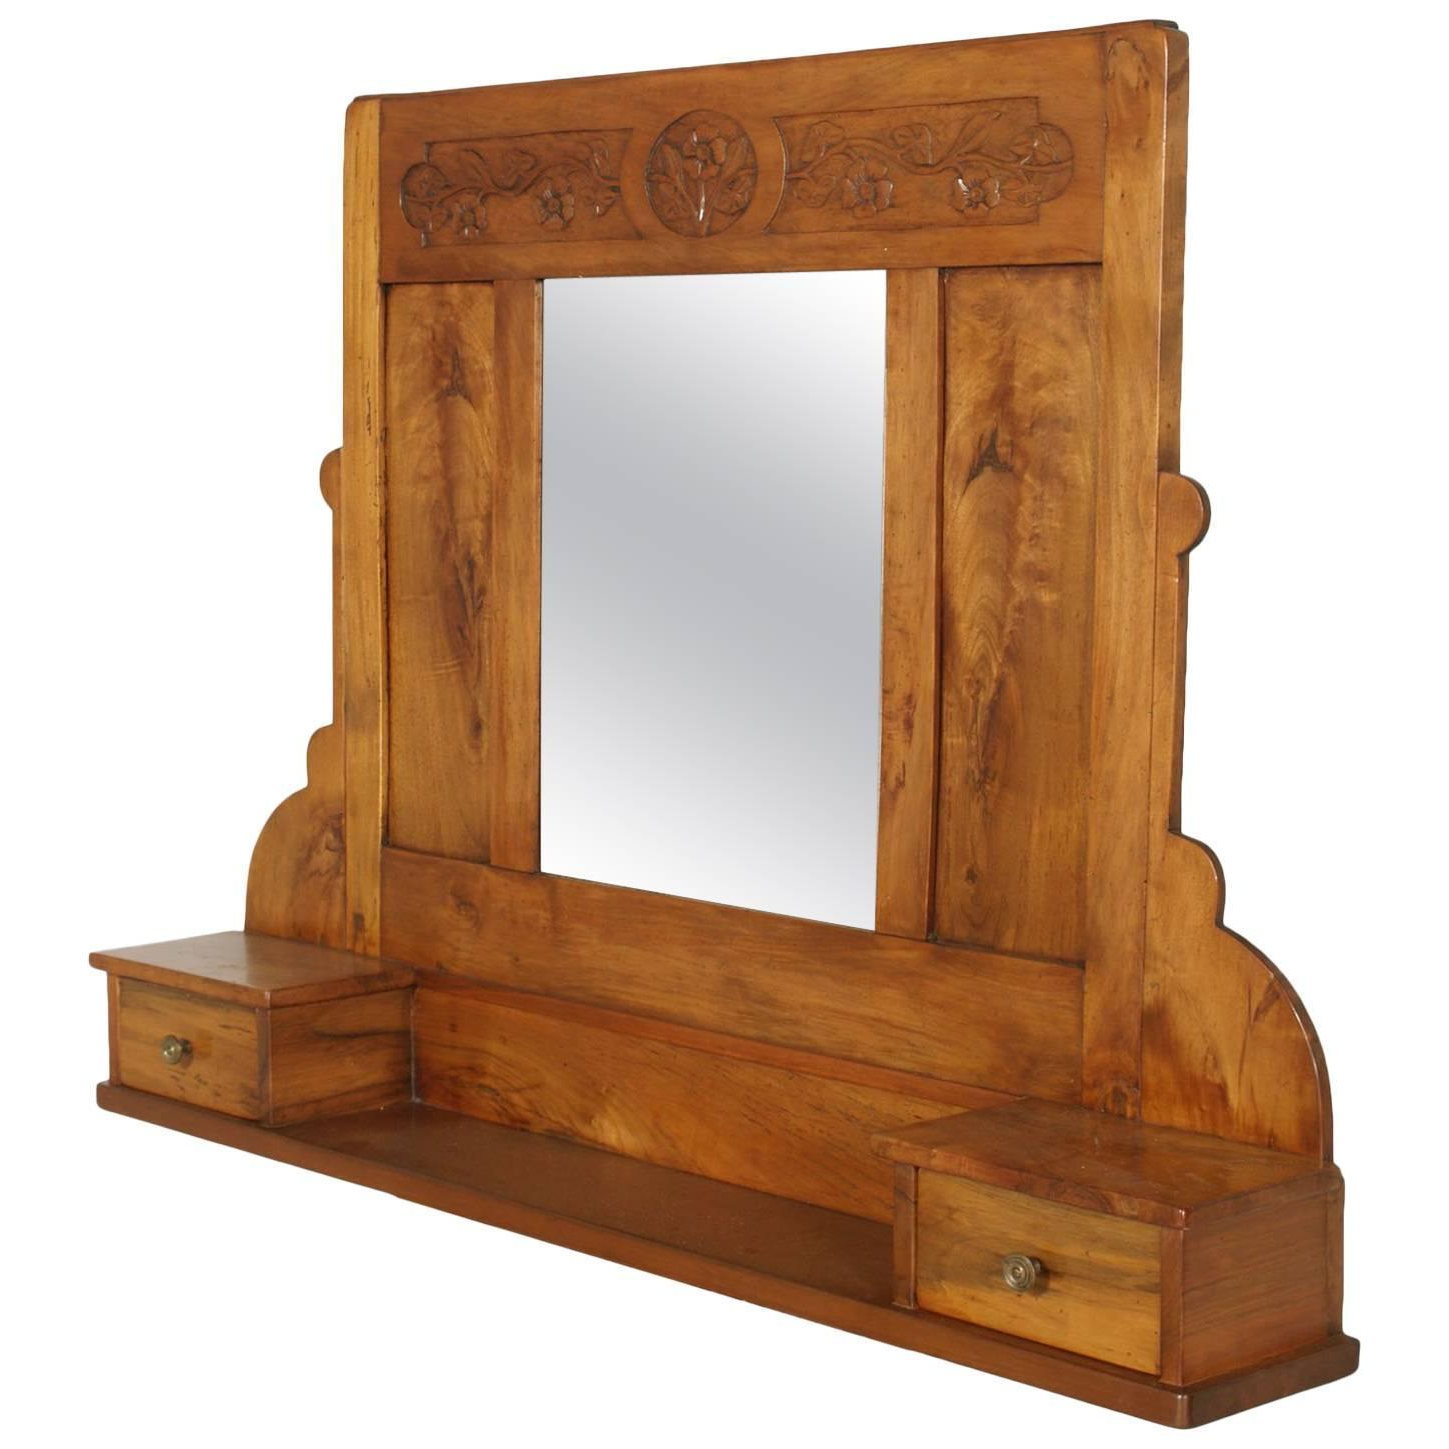 Fashionable Wall Mirrors With Drawers With Regard To Art Nouveau Wall Mirror In Hand Carved Blond Walnut With Shelf And Two  Drawers (Gallery 10 of 20)